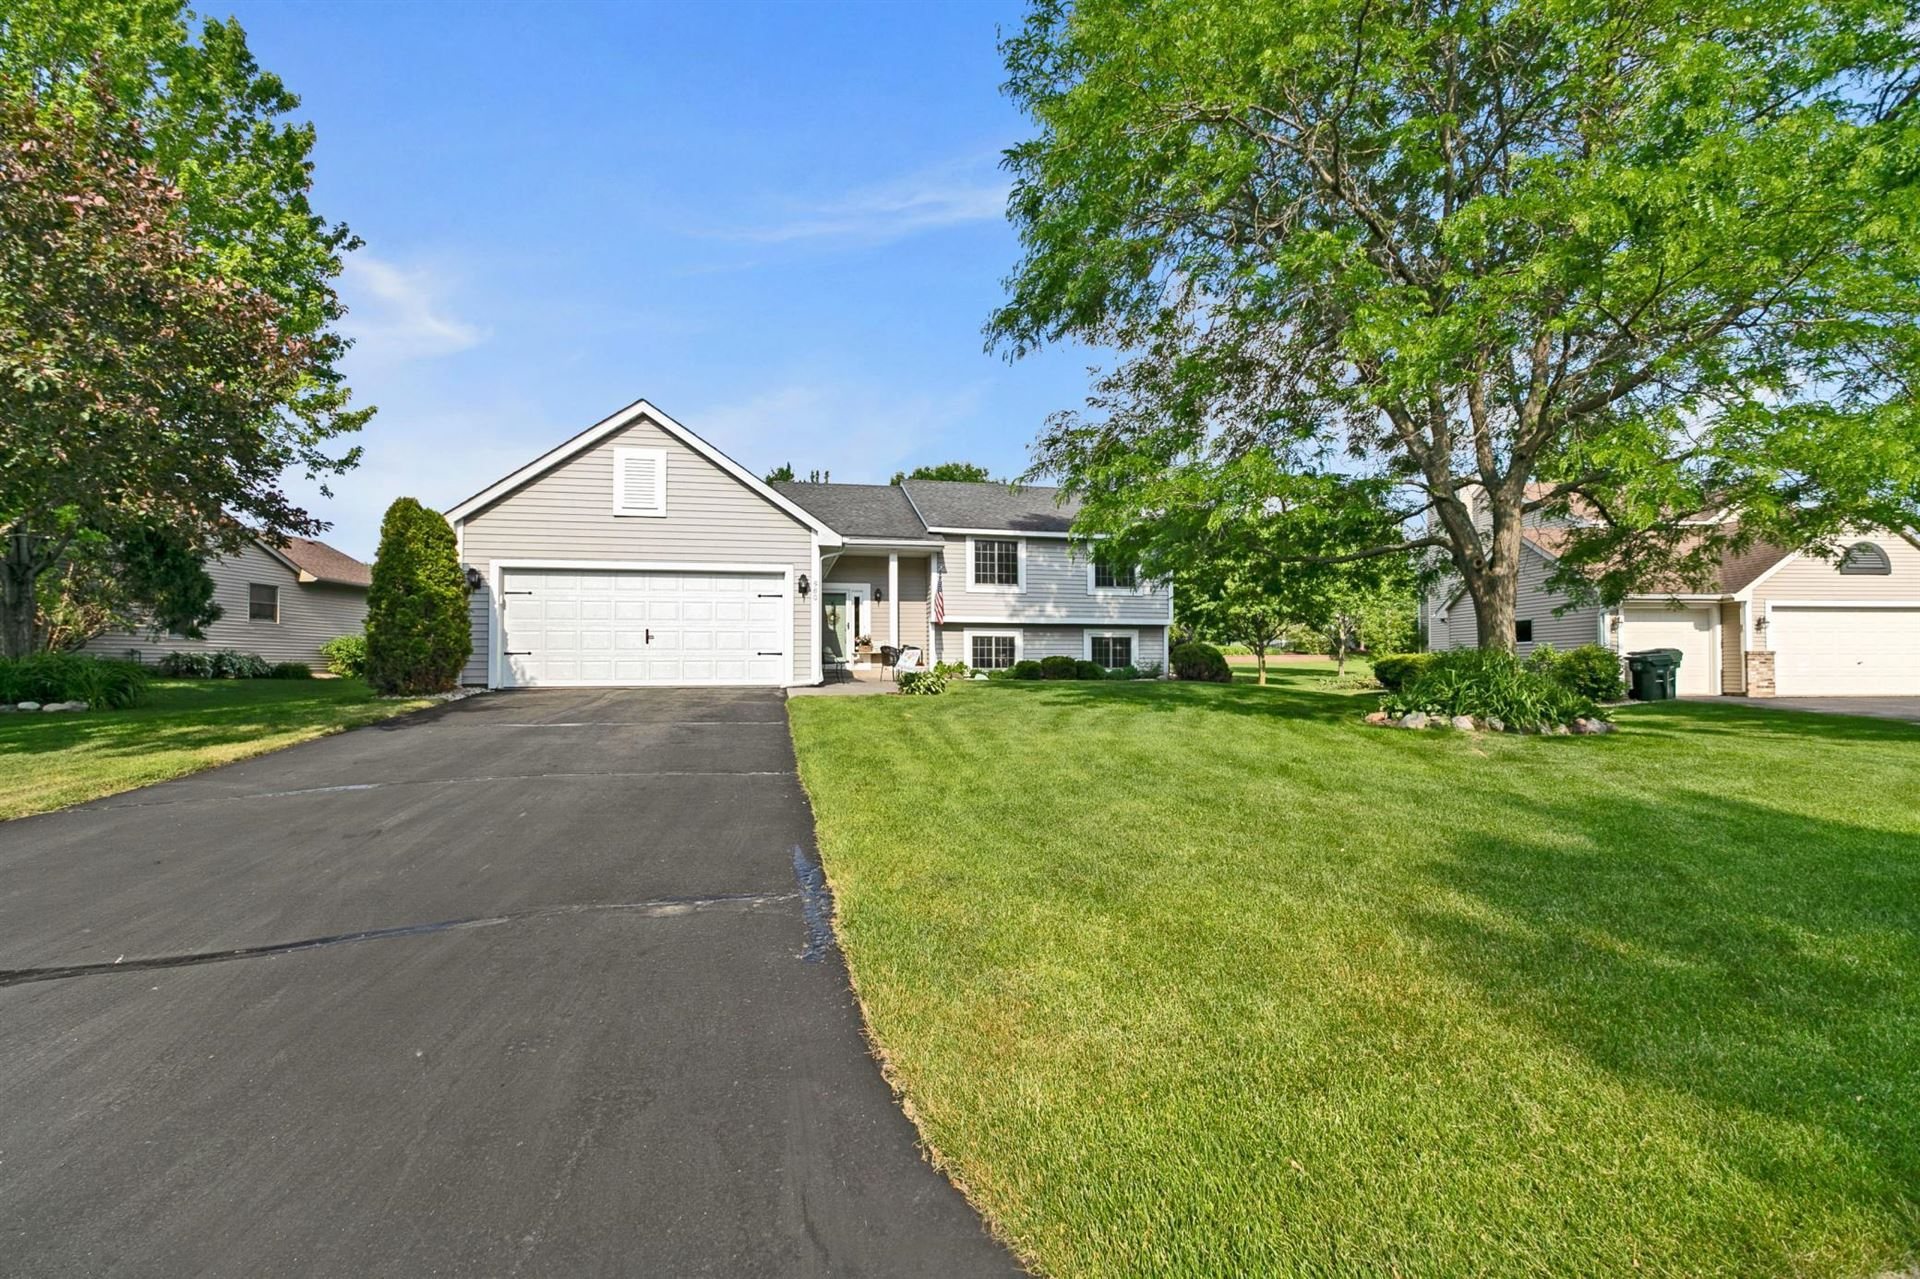 Photo of 580 Coventry Parkway, Eagan, MN 55123 (MLS # 5769734)